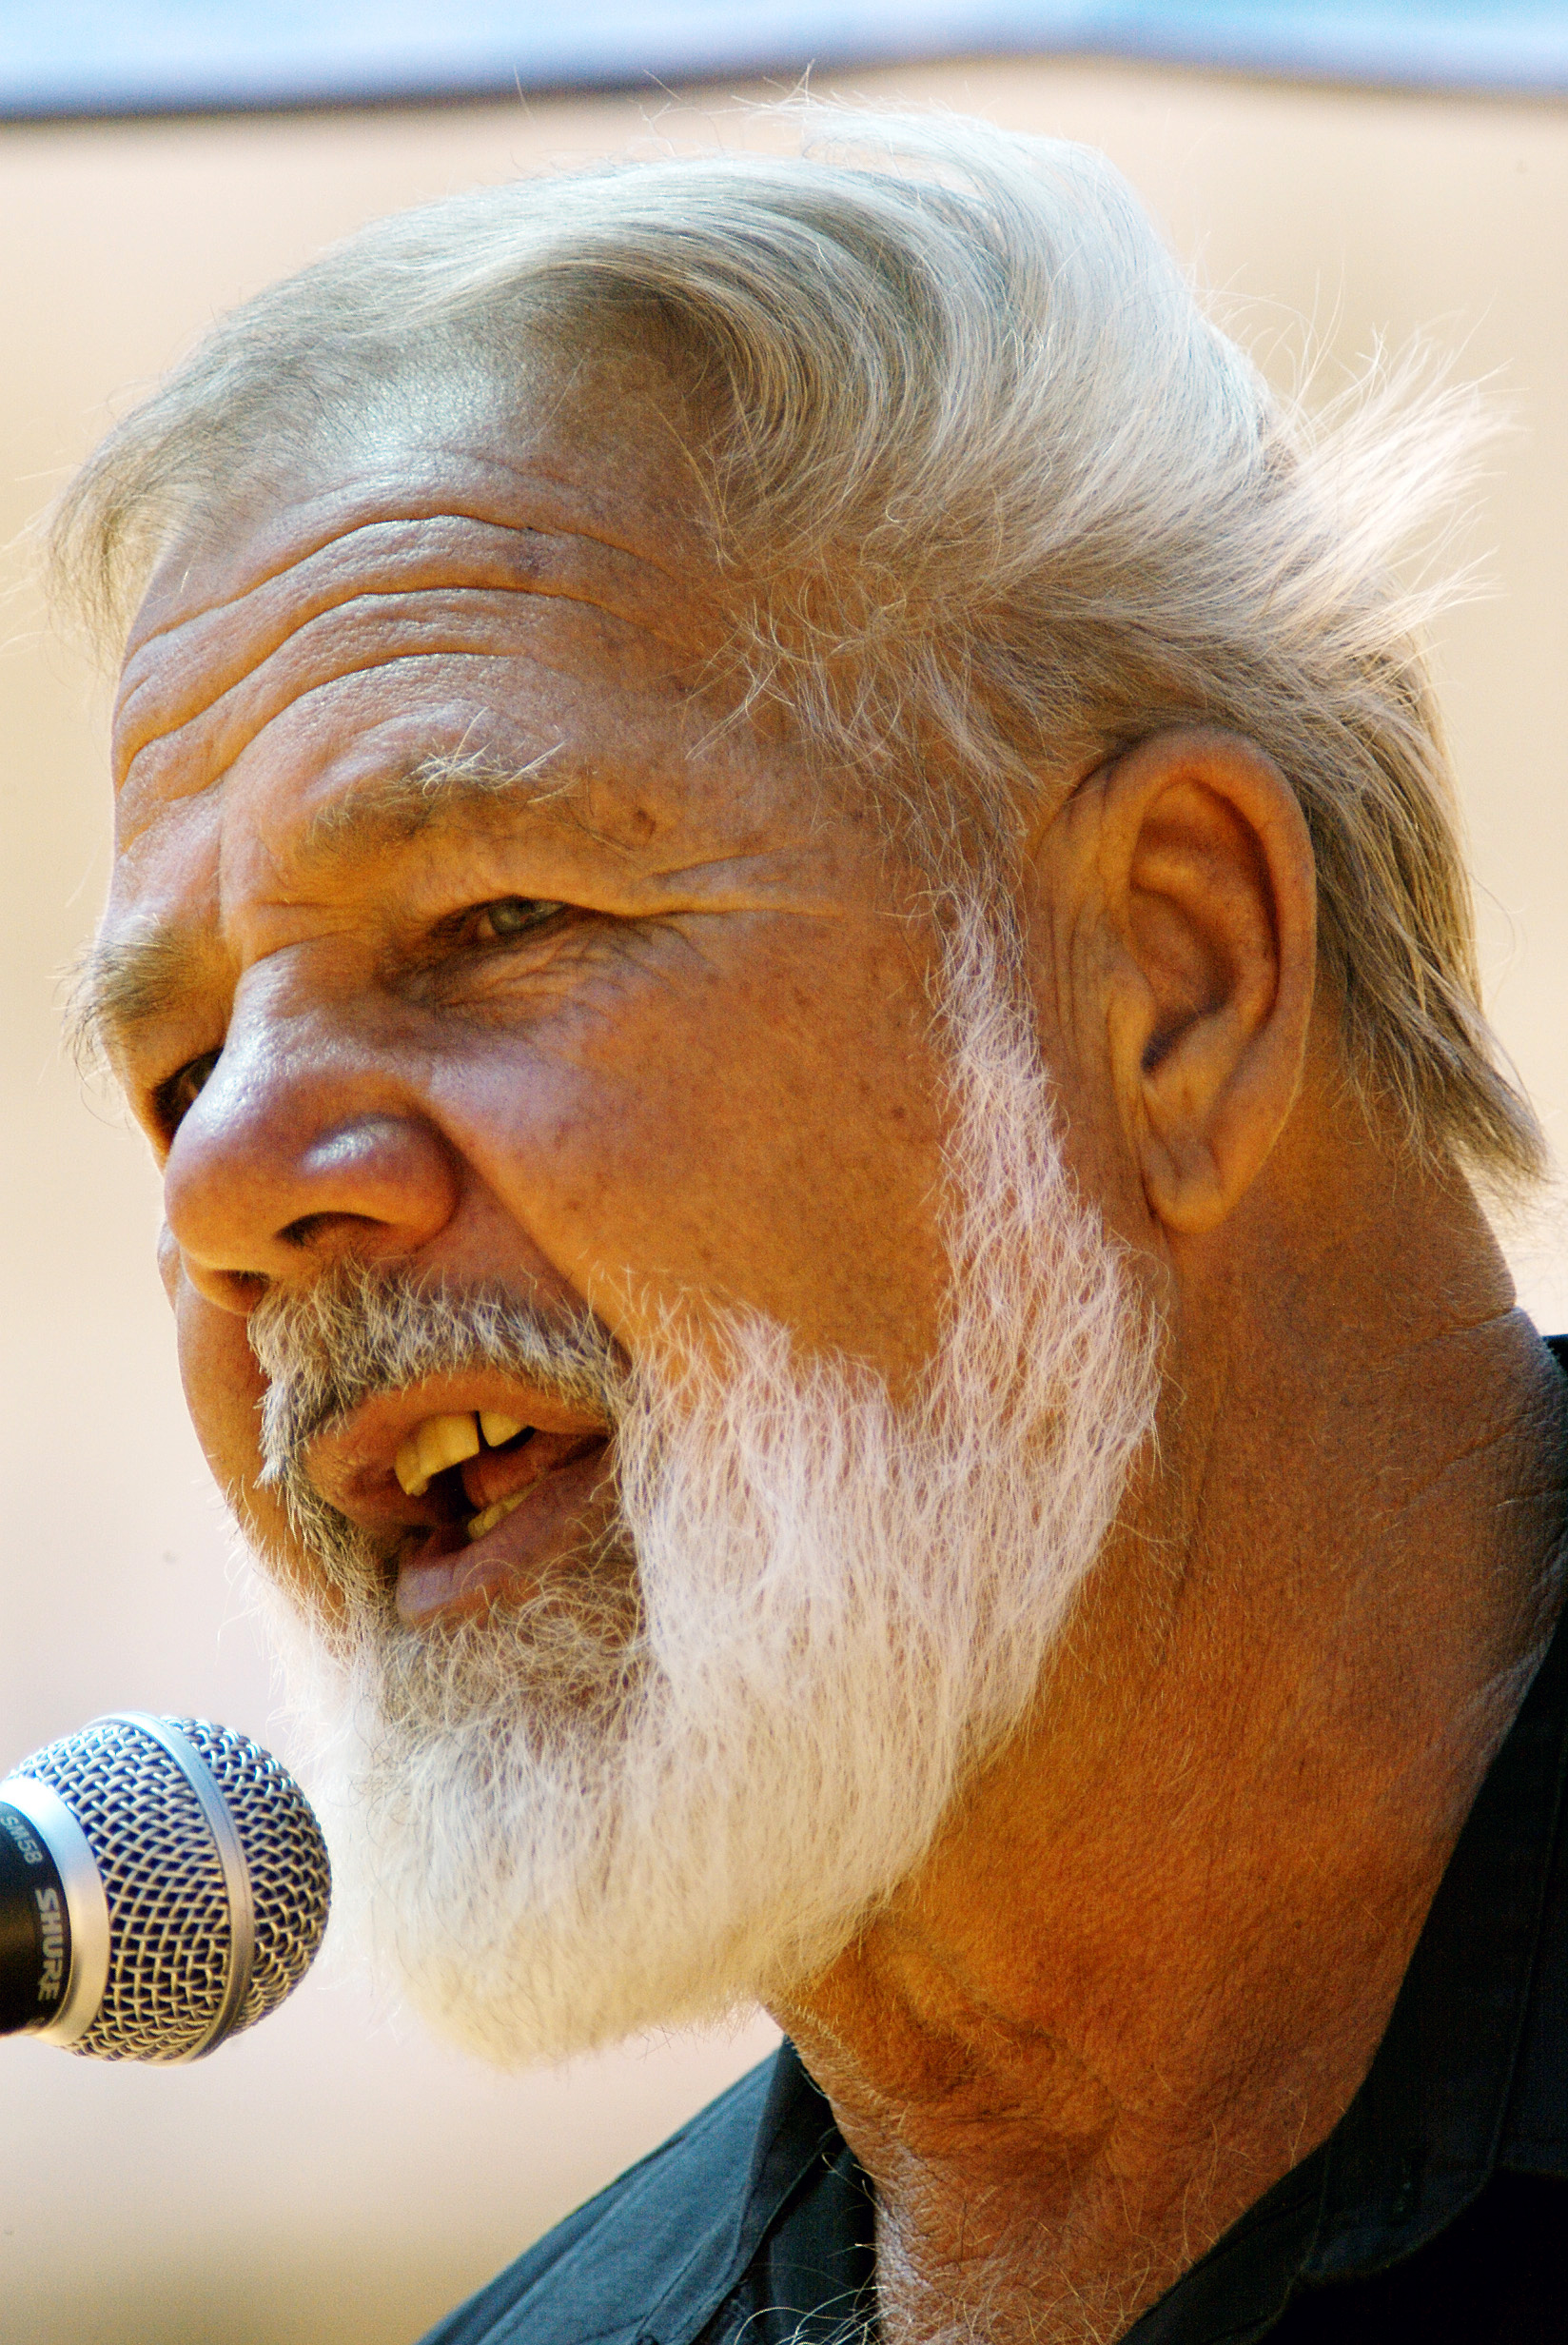 In this December 2005 file photo, South African white supremacist leader Eugene Terreblanche addresses followers at a rally held downtown Pretoria, So...